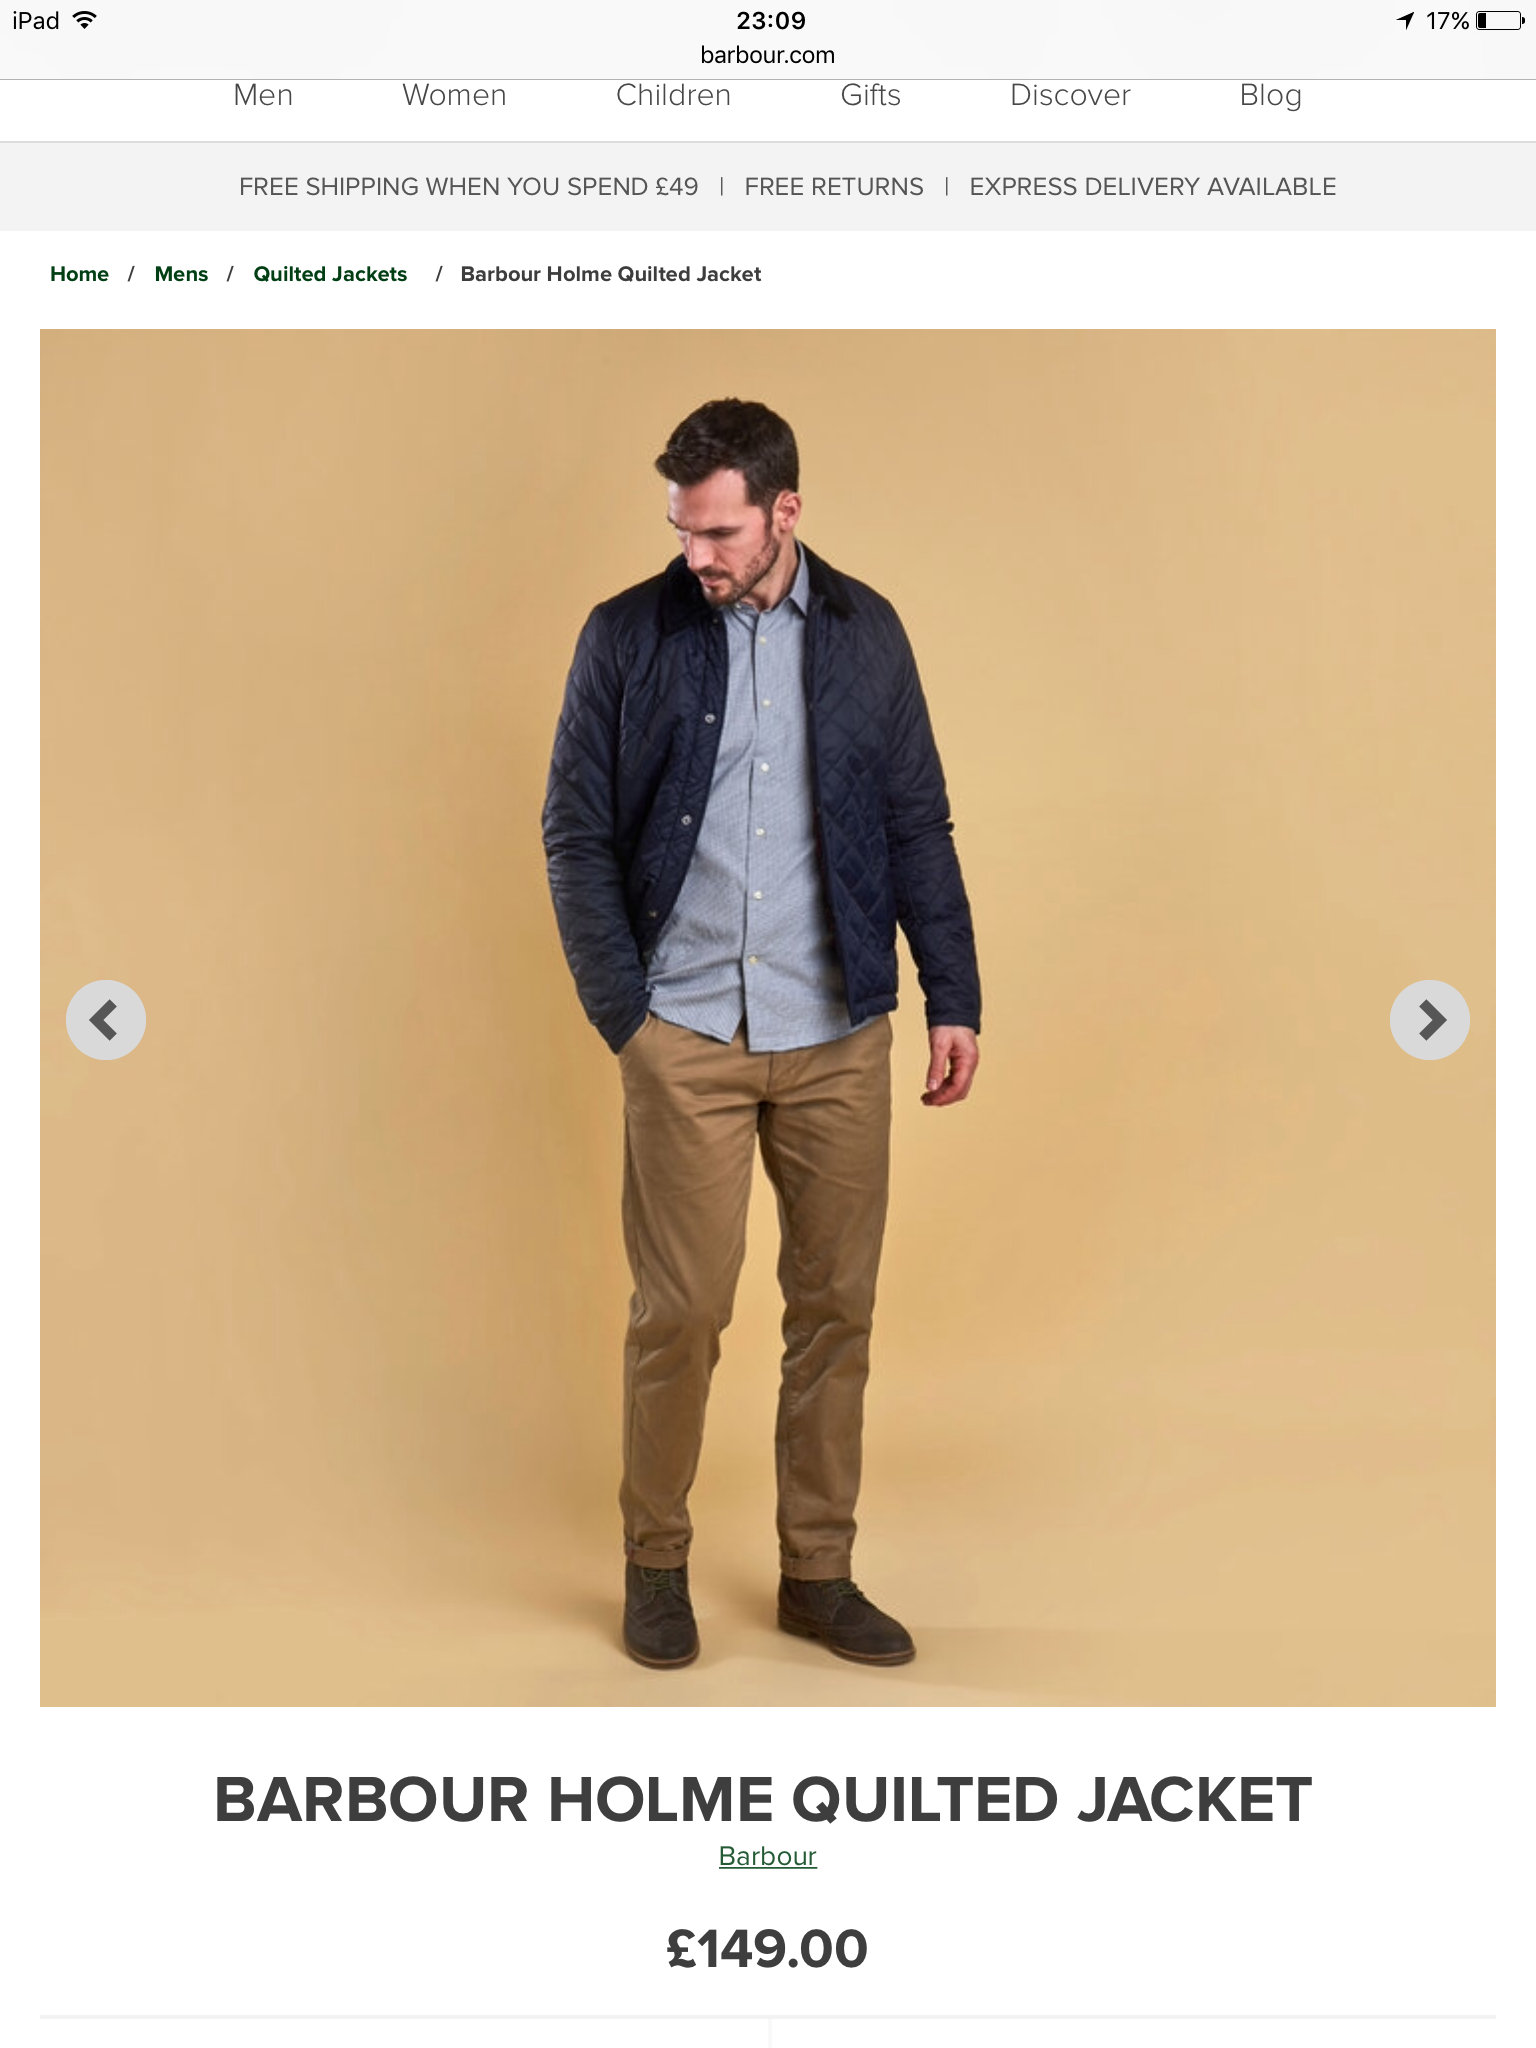 Pin by Ribeyed on Barbour quilted jacket Quilted jacket